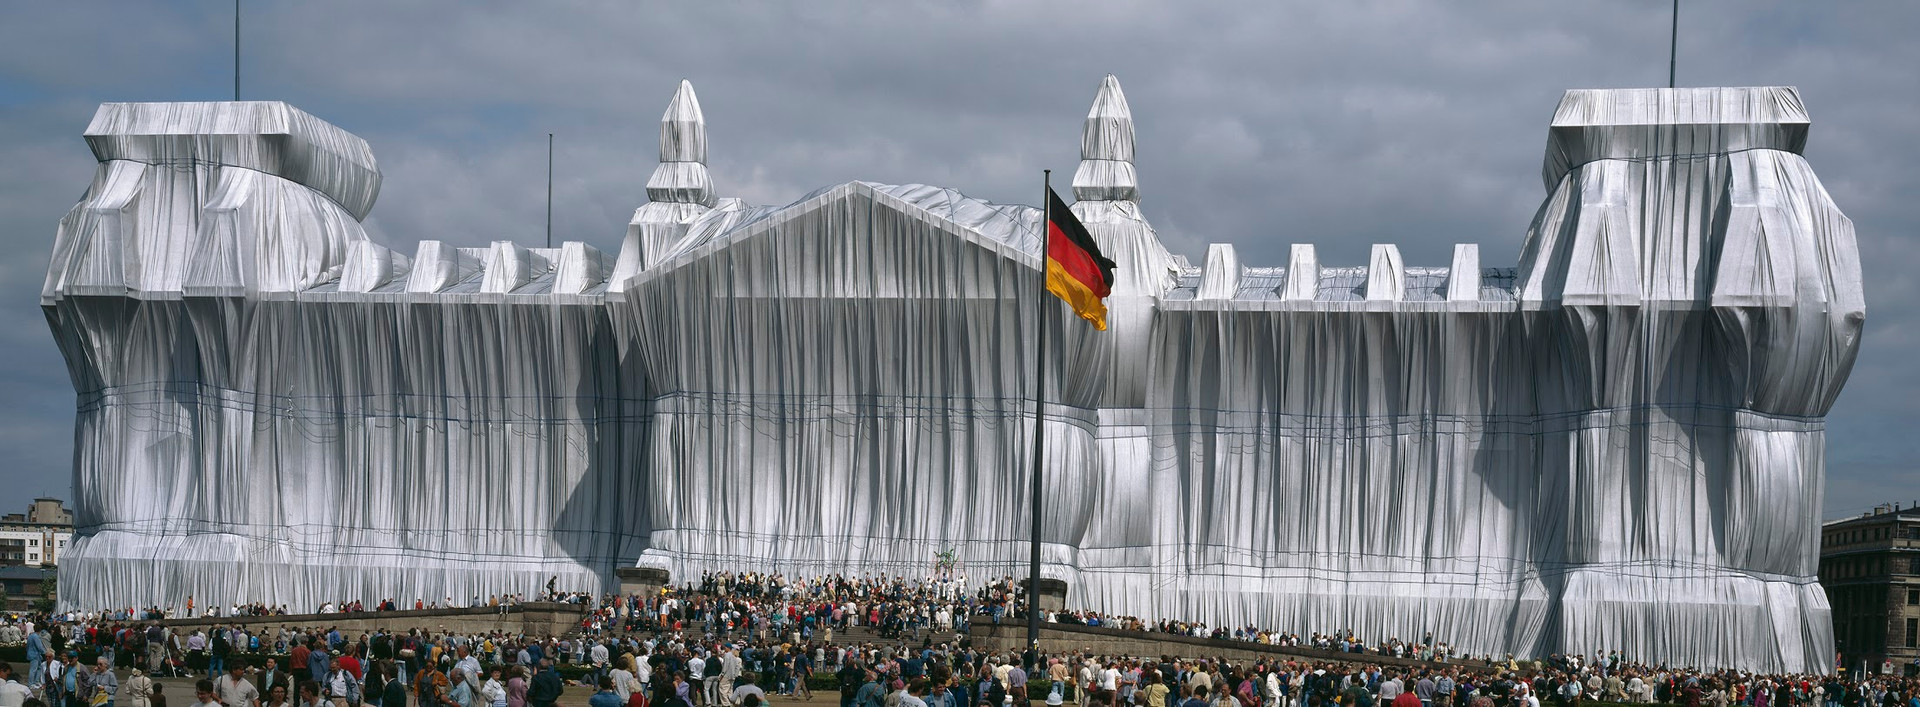 8 - Wrapped Reichstag (1995).jpeg